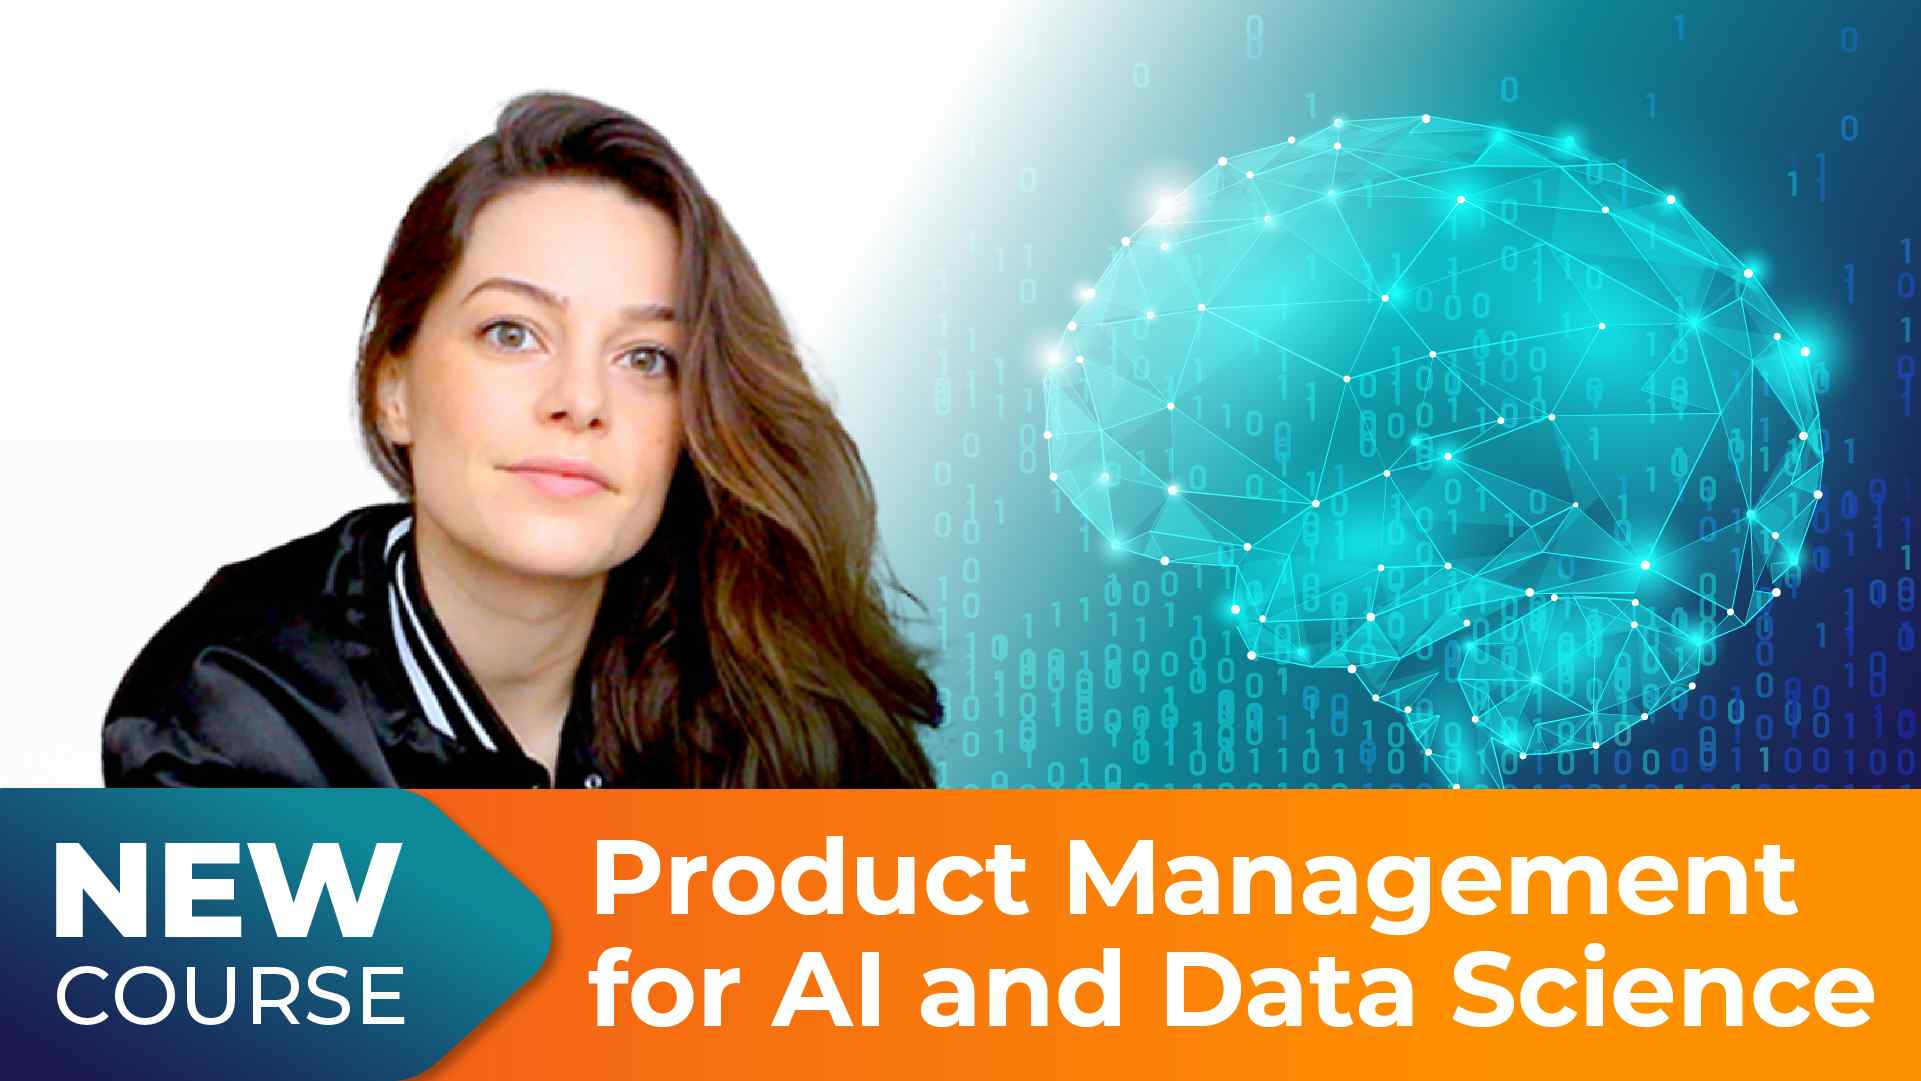 Product Management for AI and Data Science Course